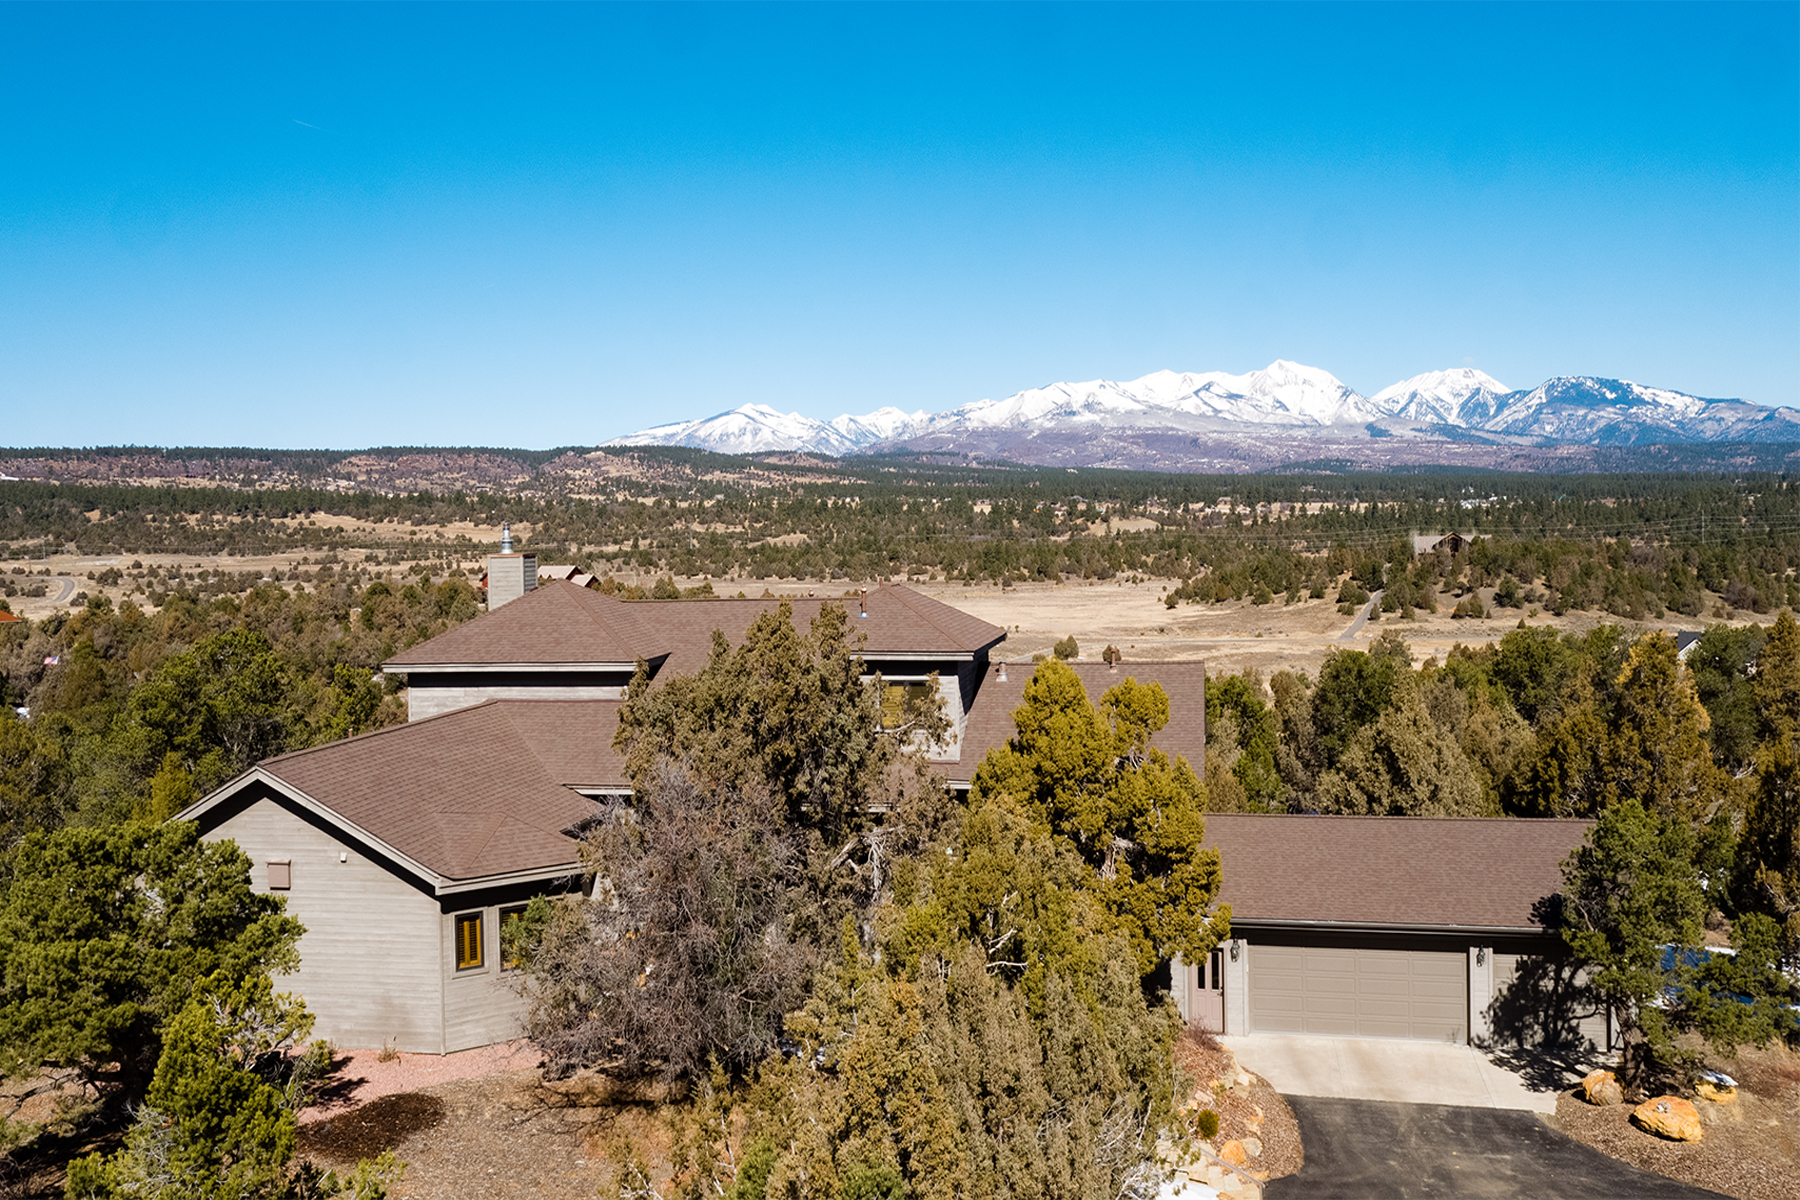 Single Family Home for Active at 208 Deer Valley Road 208 Deer Valley Road Hesperus, Colorado 81301 United States